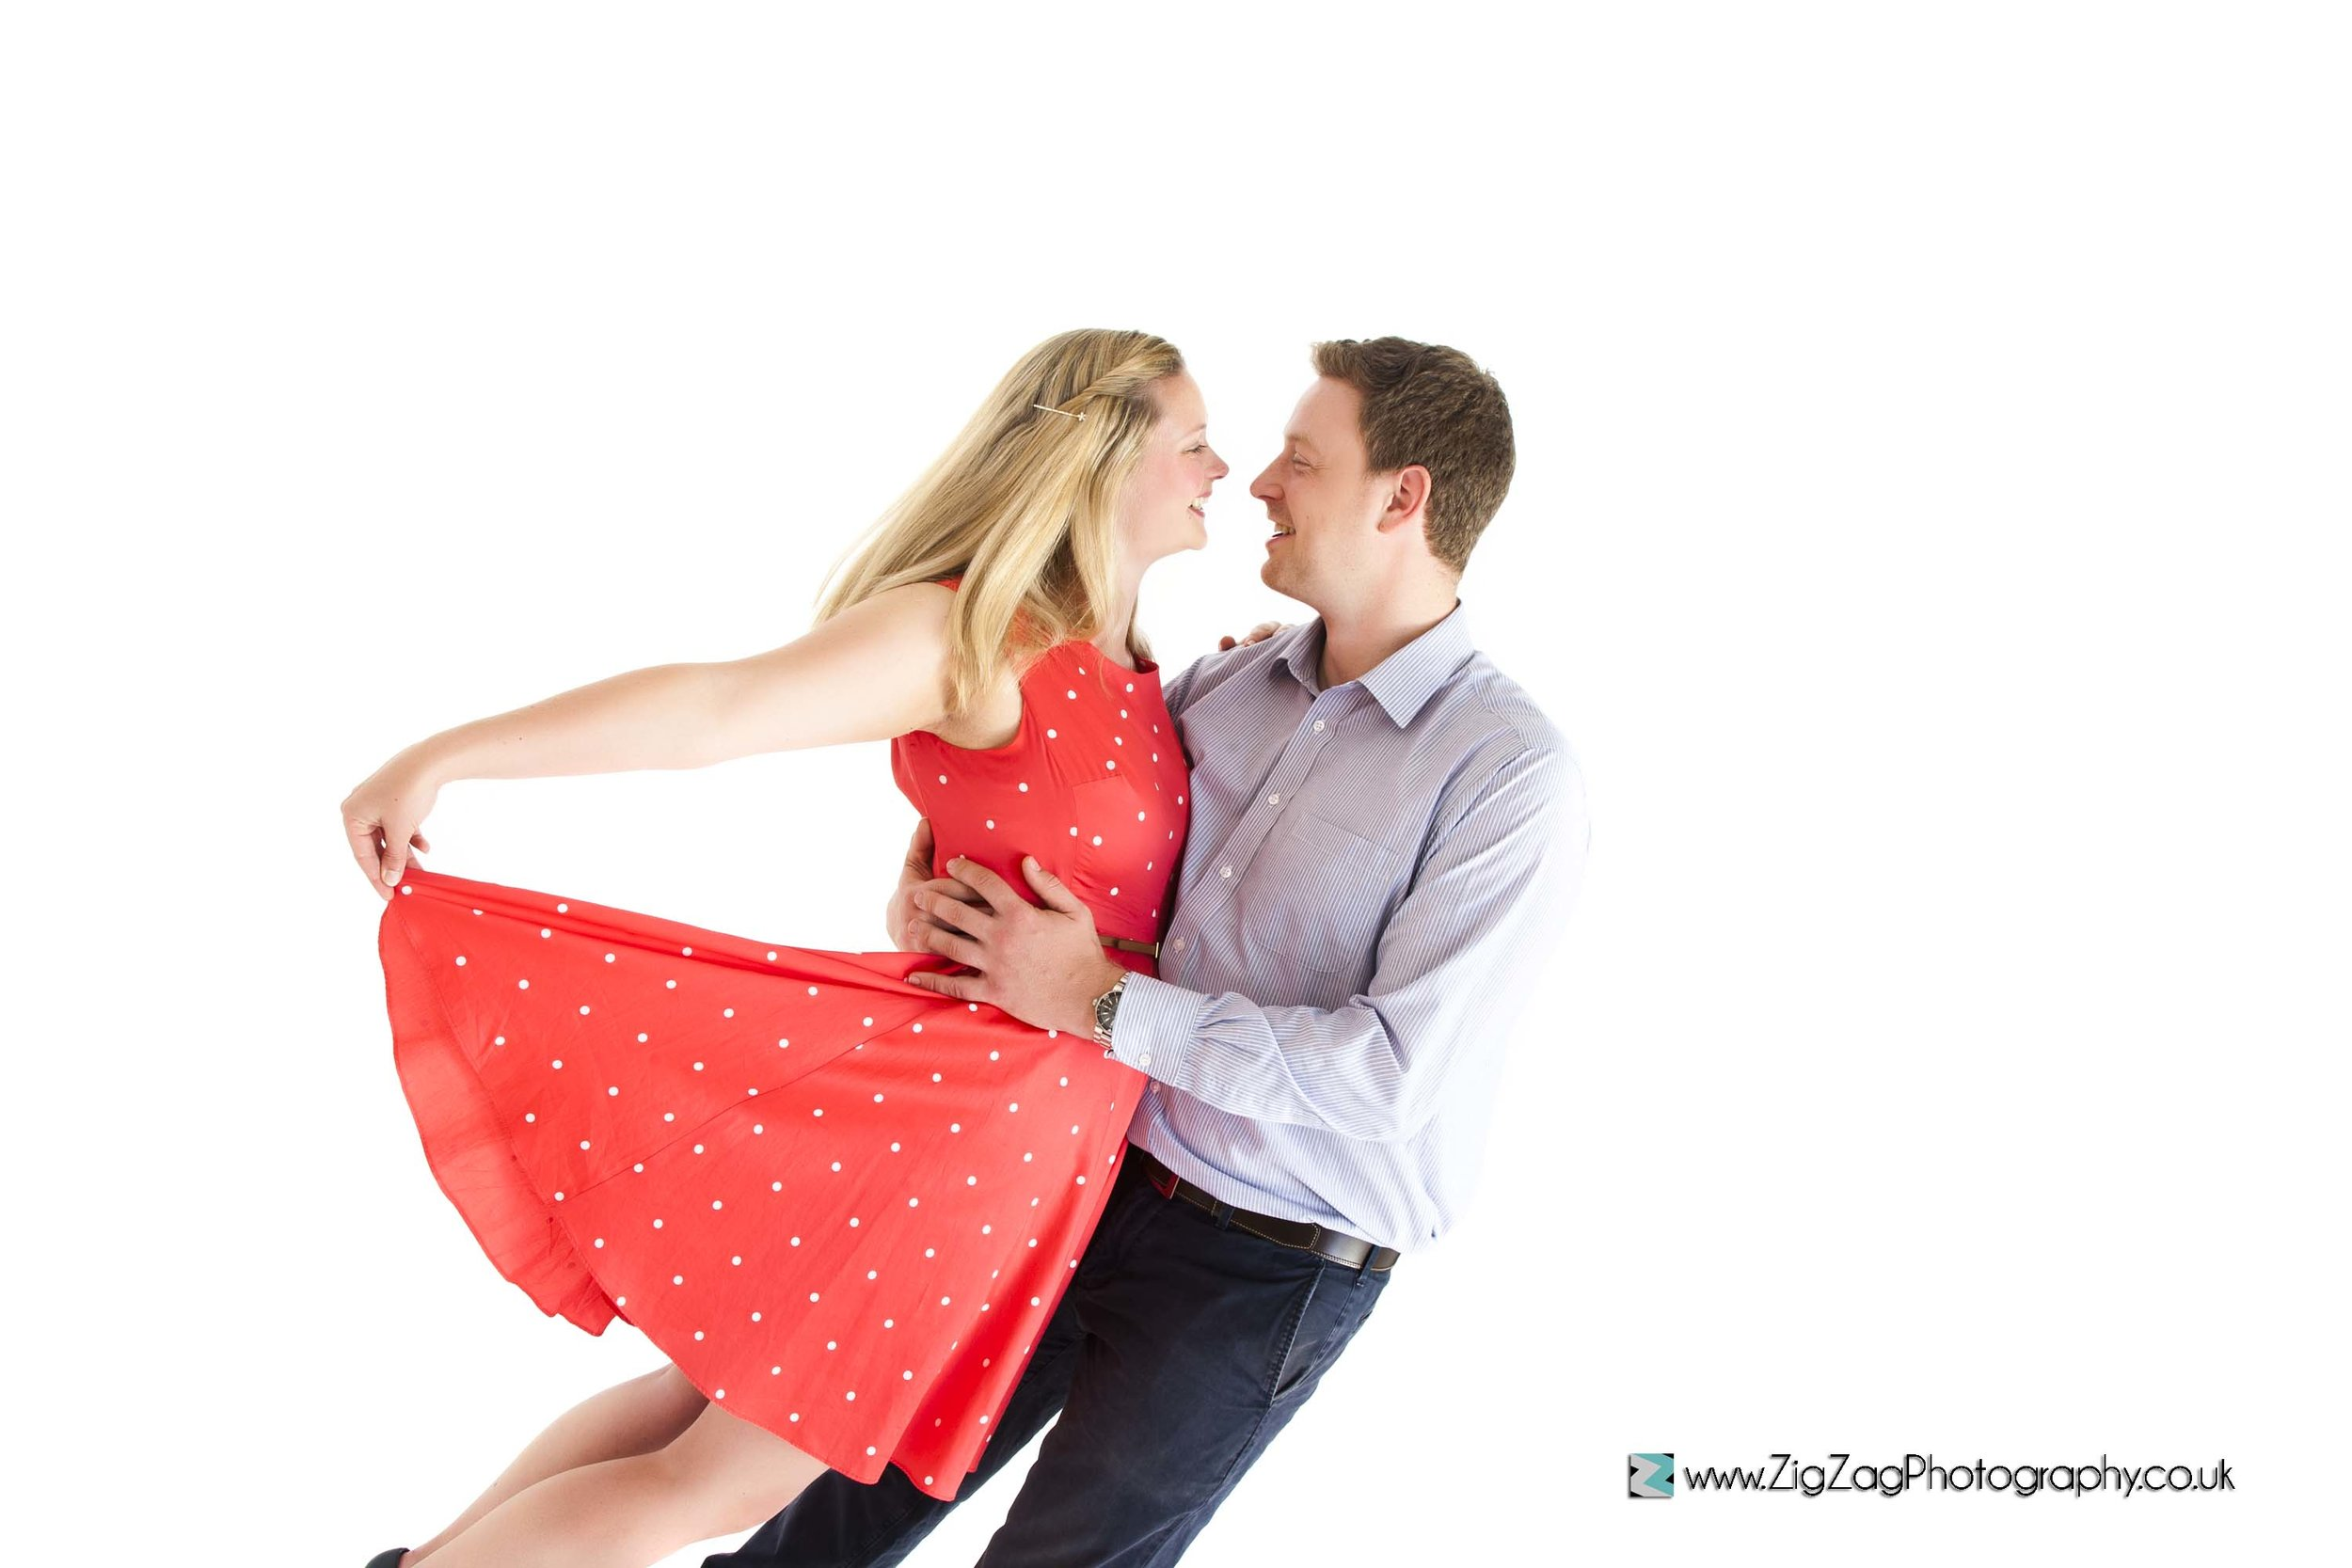 photography-session-leicester-studio-photoshoot-zigzag-dress-red-polka-dot-man-woman-love-romantic-happy.jpg